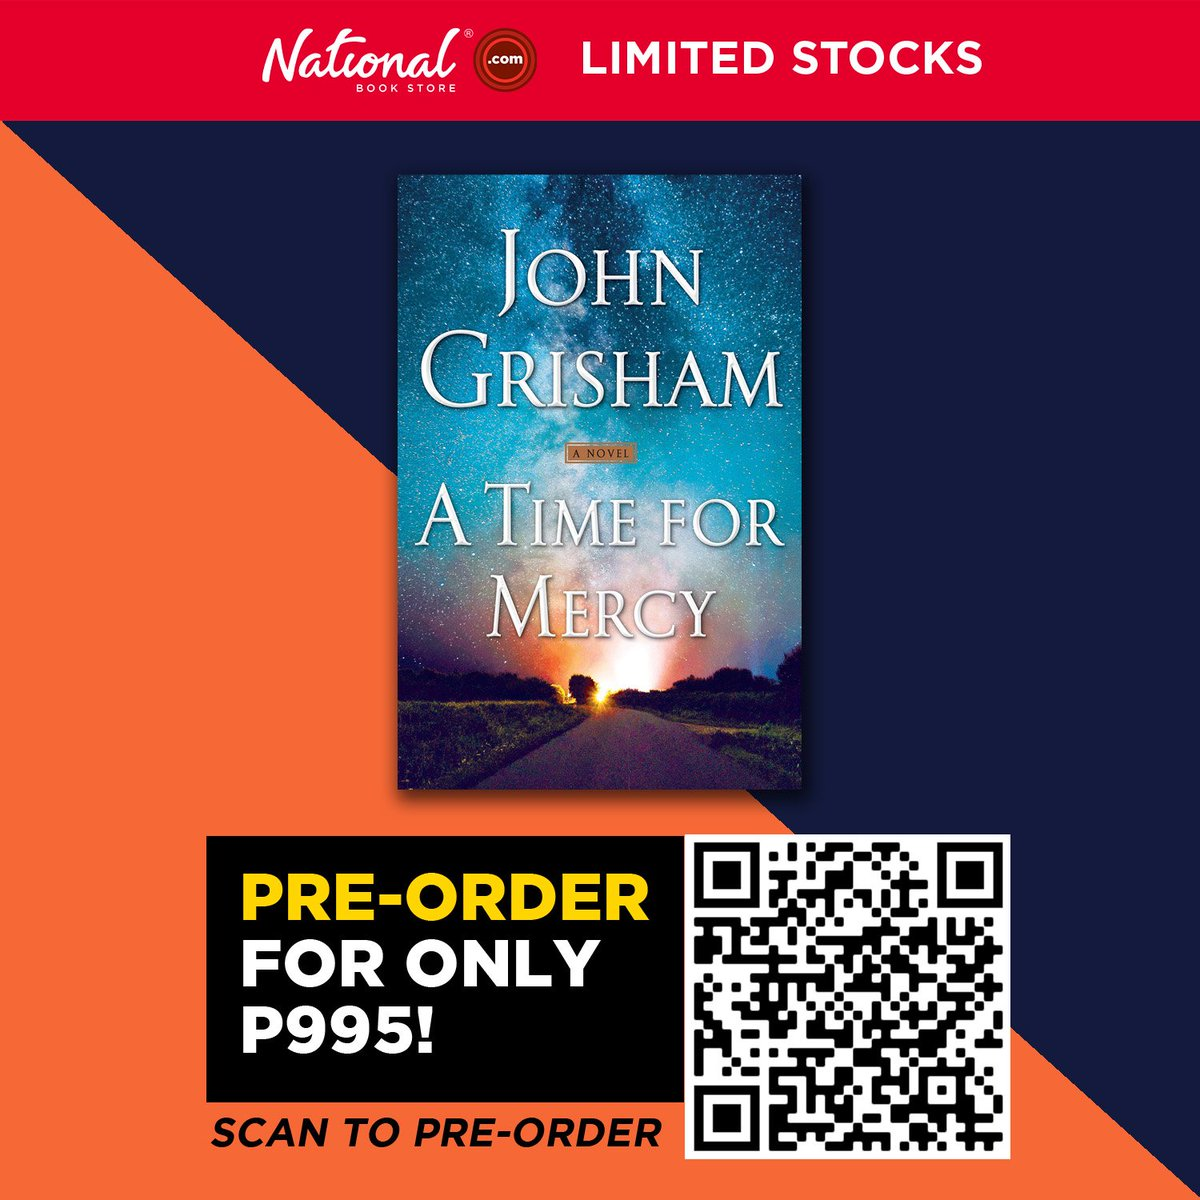 Pre-order A Time for Mercy (Jake Brigance #3) by John Grisham for P995.  Just scan the QR code or visit this link: . #ATimeForMercy #JohnGrisham #NBSNewReads #NBSbookstagram #NBSeveryday